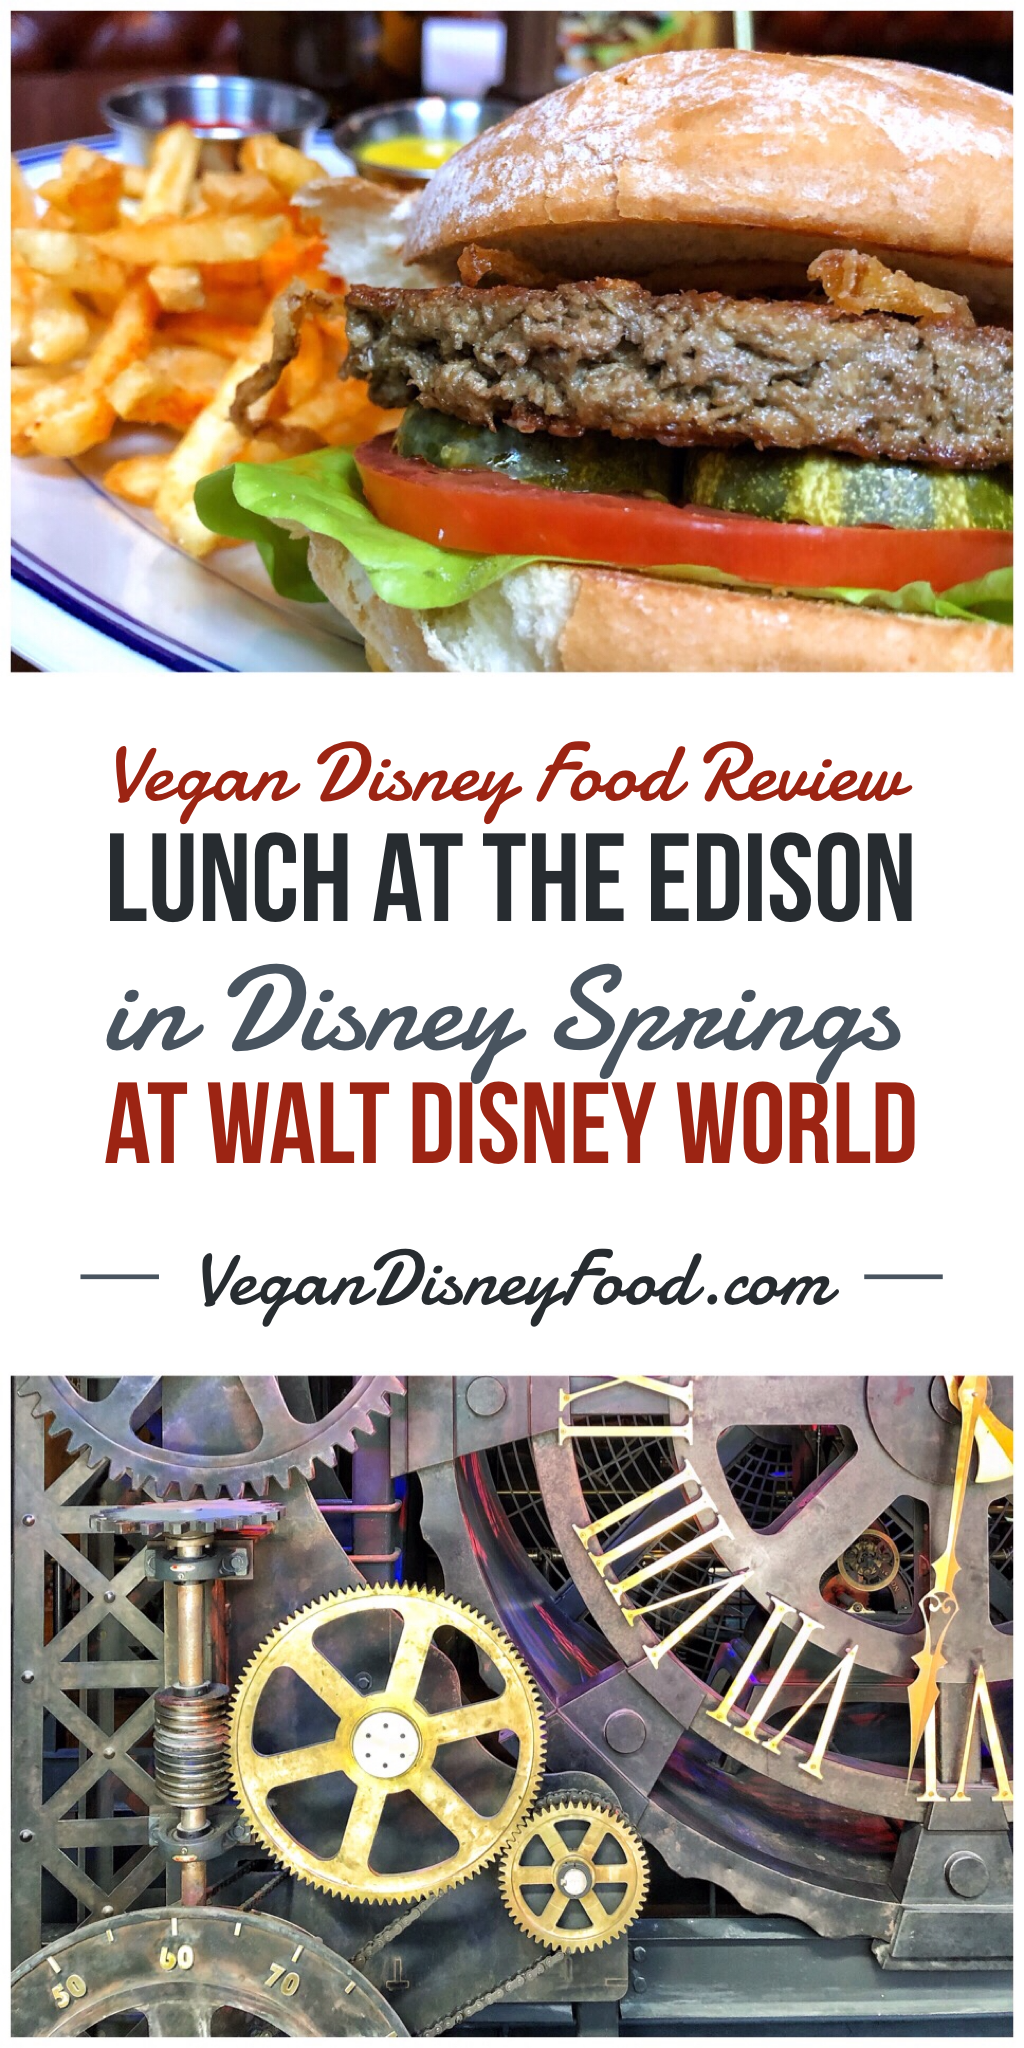 Vegan Disney Food Review: Lunch at The Edison in Disney Springs at Walt Disney World